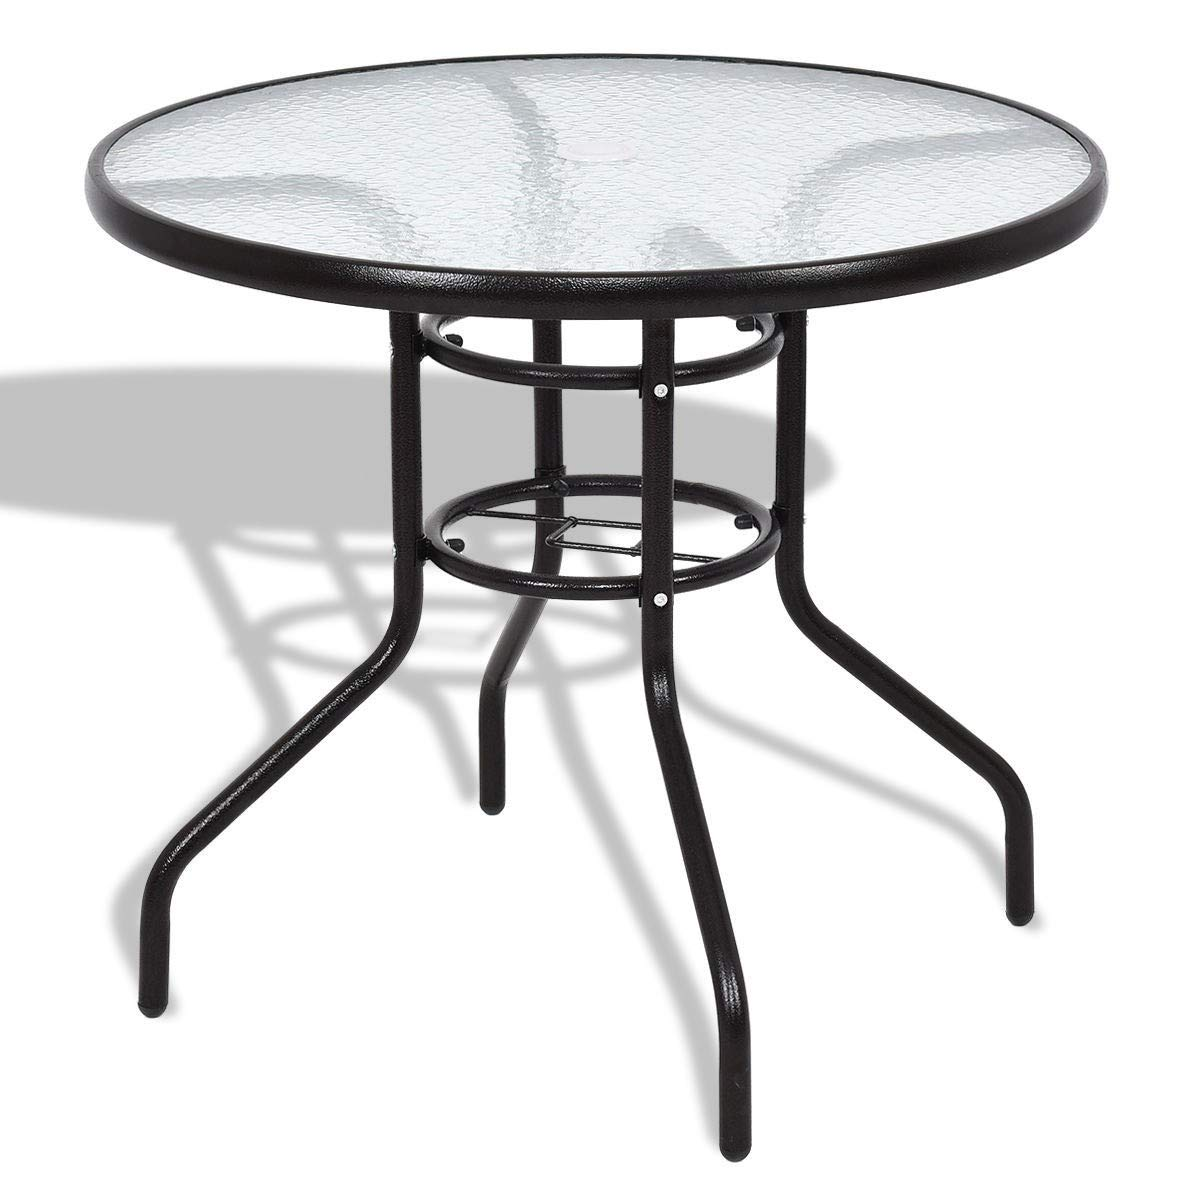 LordBee Outdoor Patio Garden Yard Round Table Steel Frame Dining Coffee Table